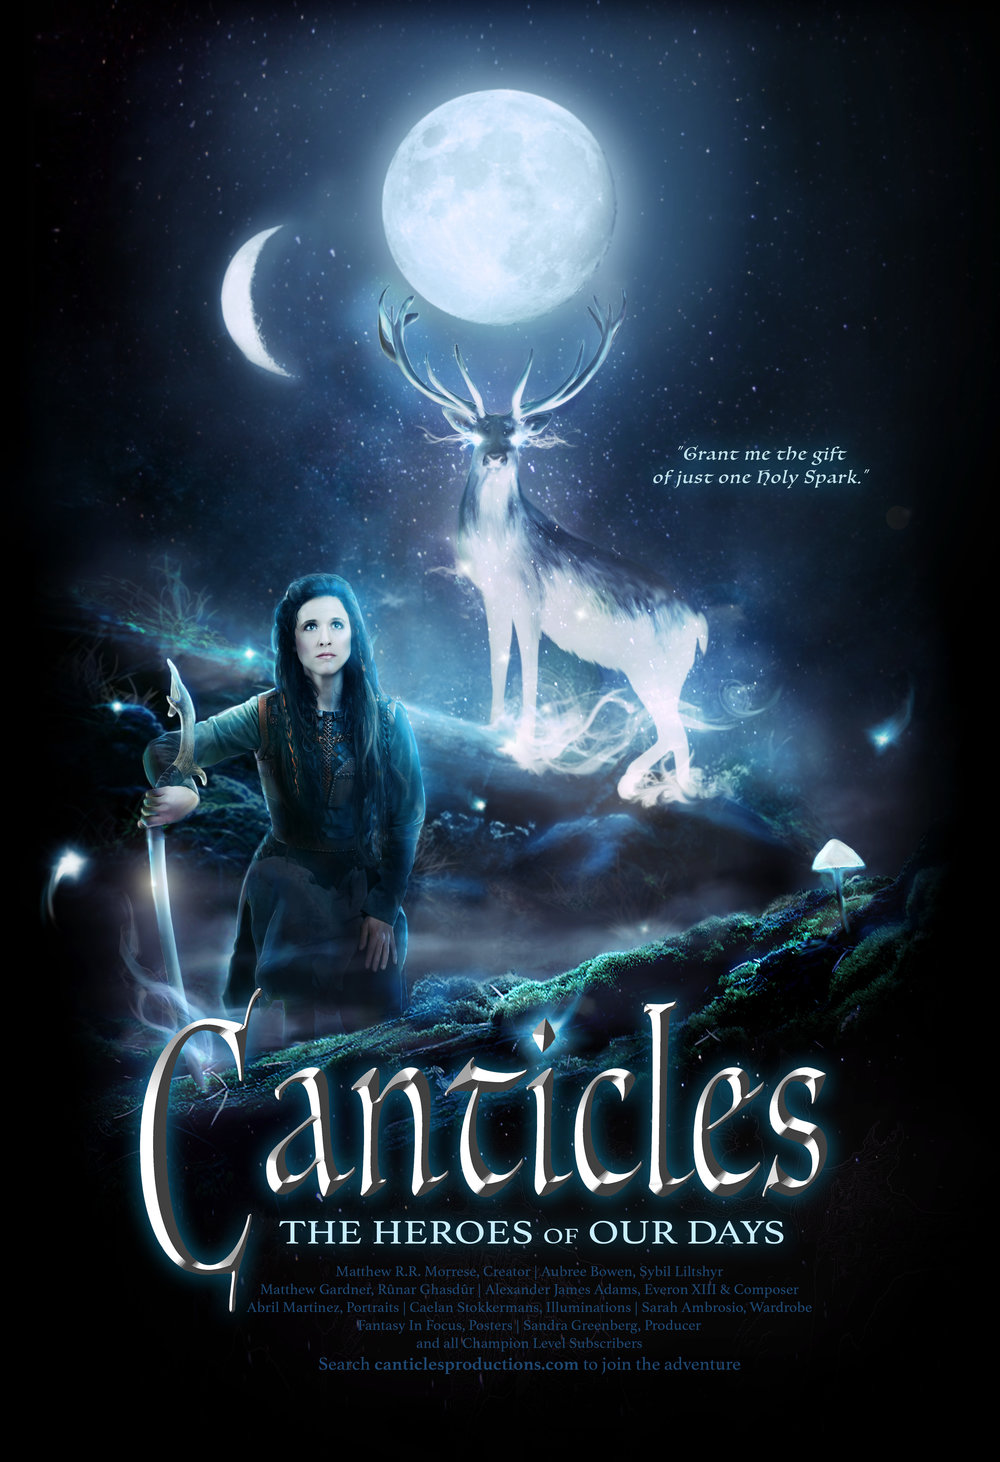 Canticles - Poster 2 (High Res).jpg